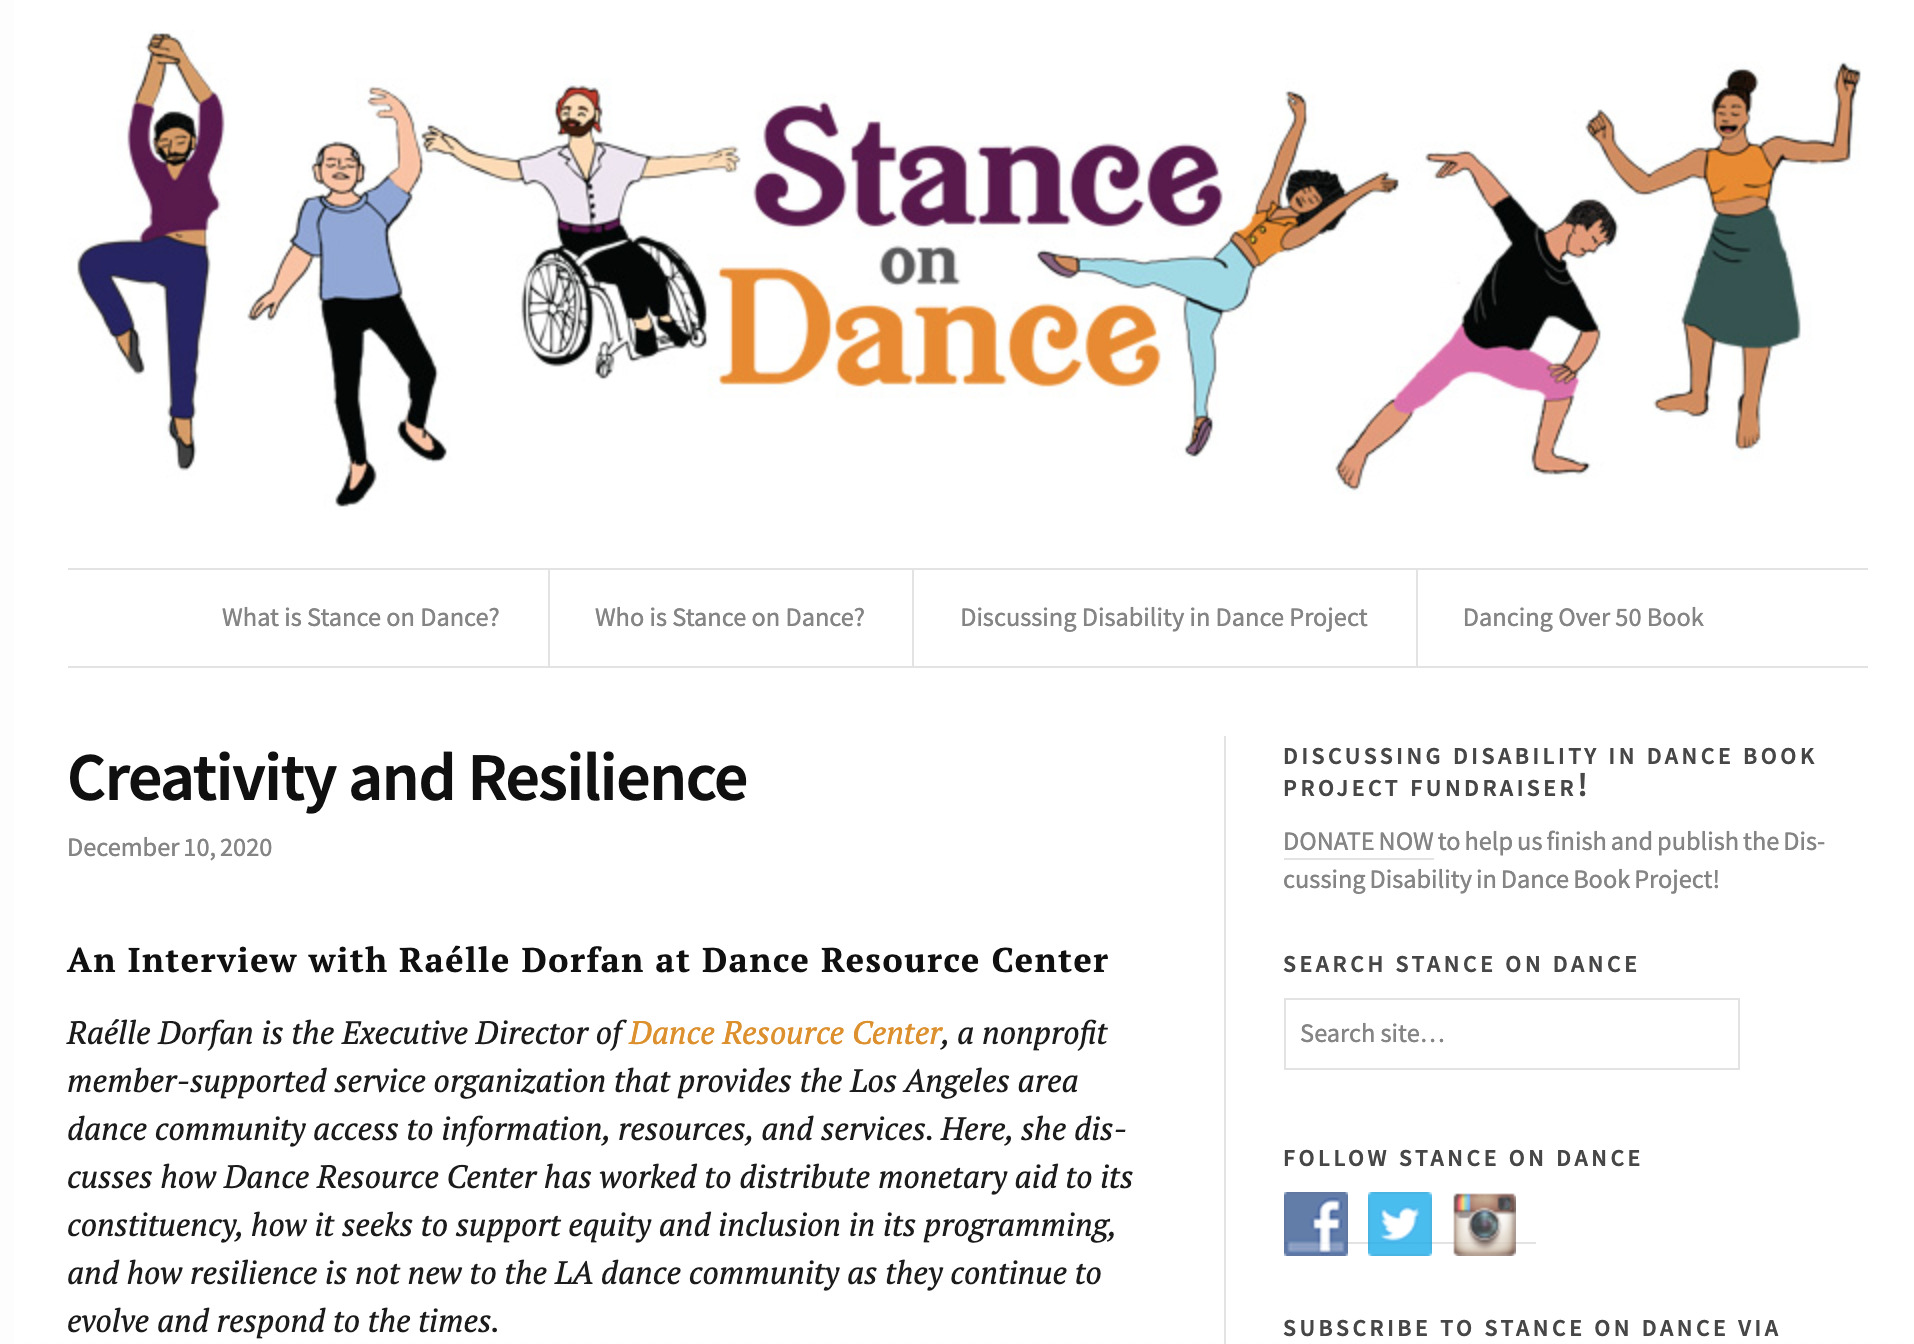 Stance on Dance interview with Raélle Dorfan at Dance Resource Center article.